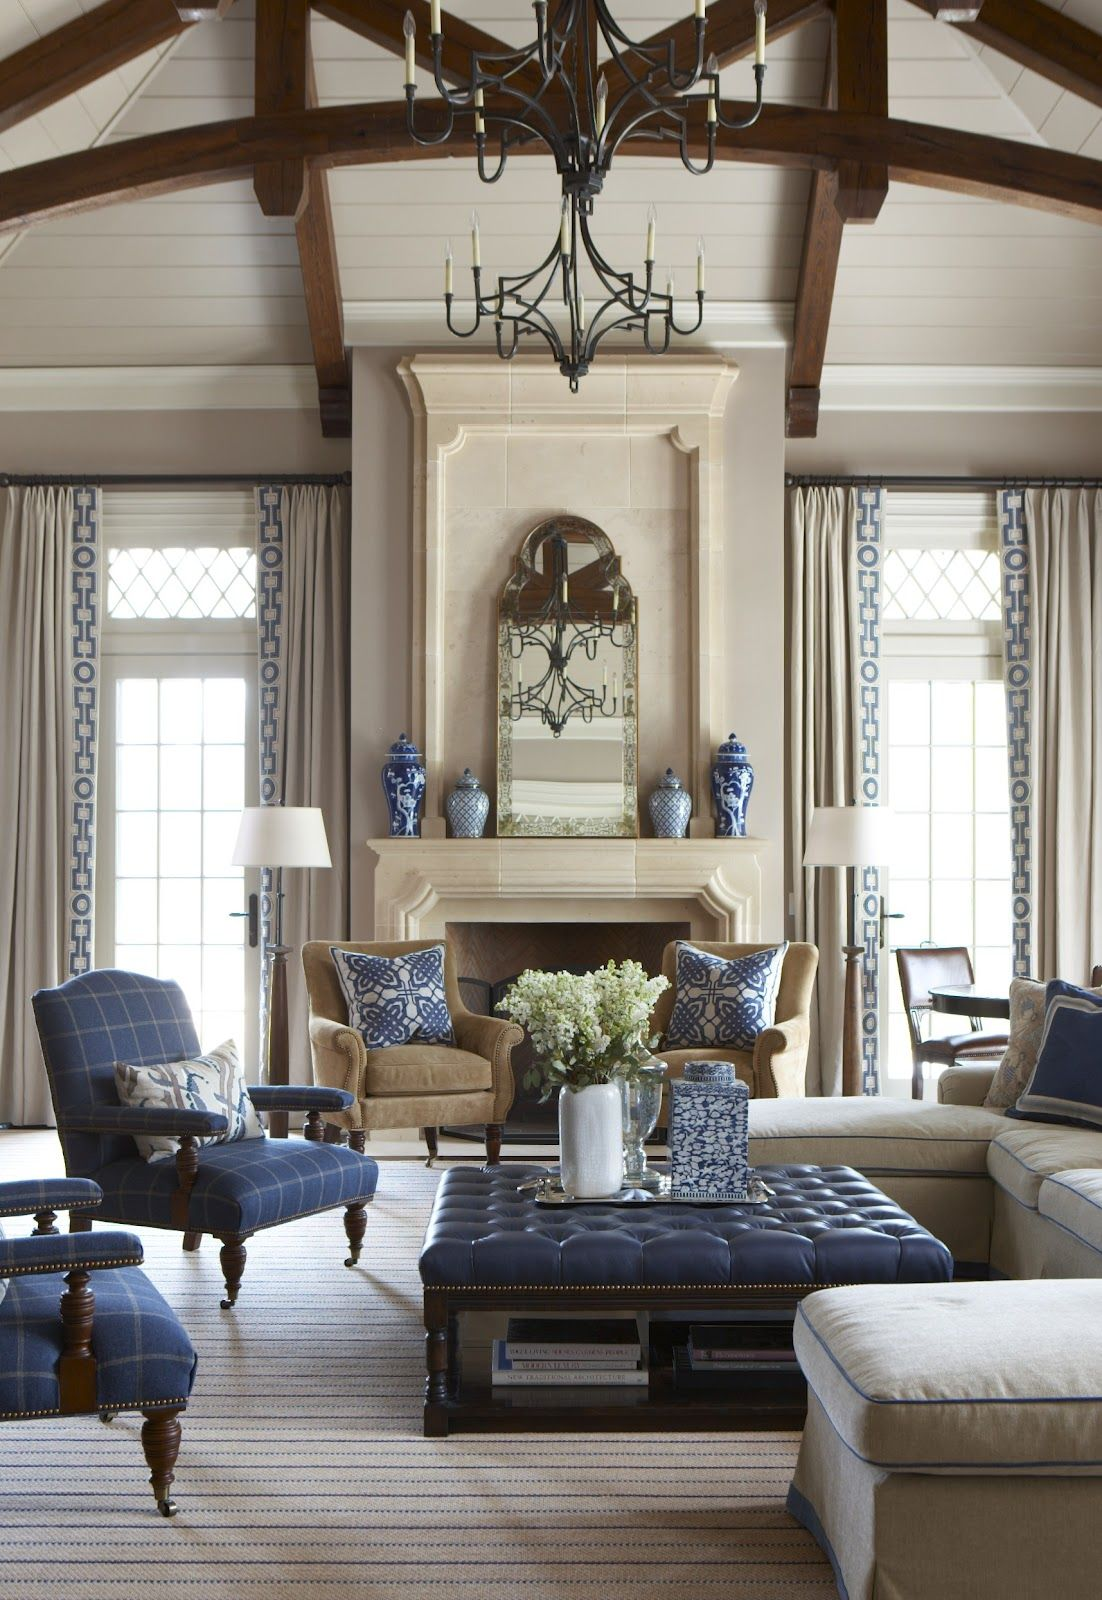 photos of beautifully decorated living rooms white tile floors in room a done navy with blue and chinoise accents